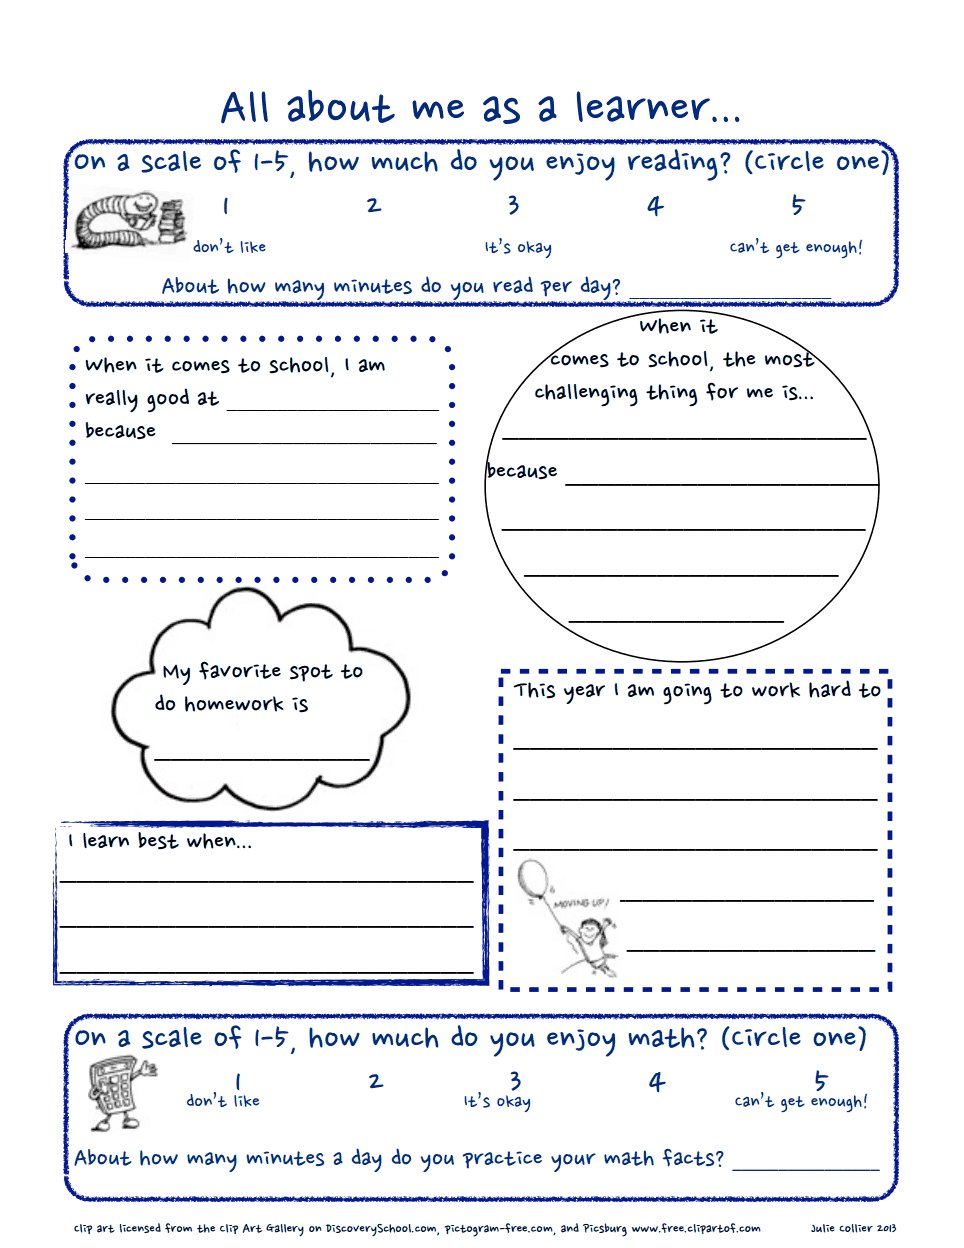 worksheet All About Me Middle School Worksheet all about me pdf fabulous fourth grade pinterest school pdf